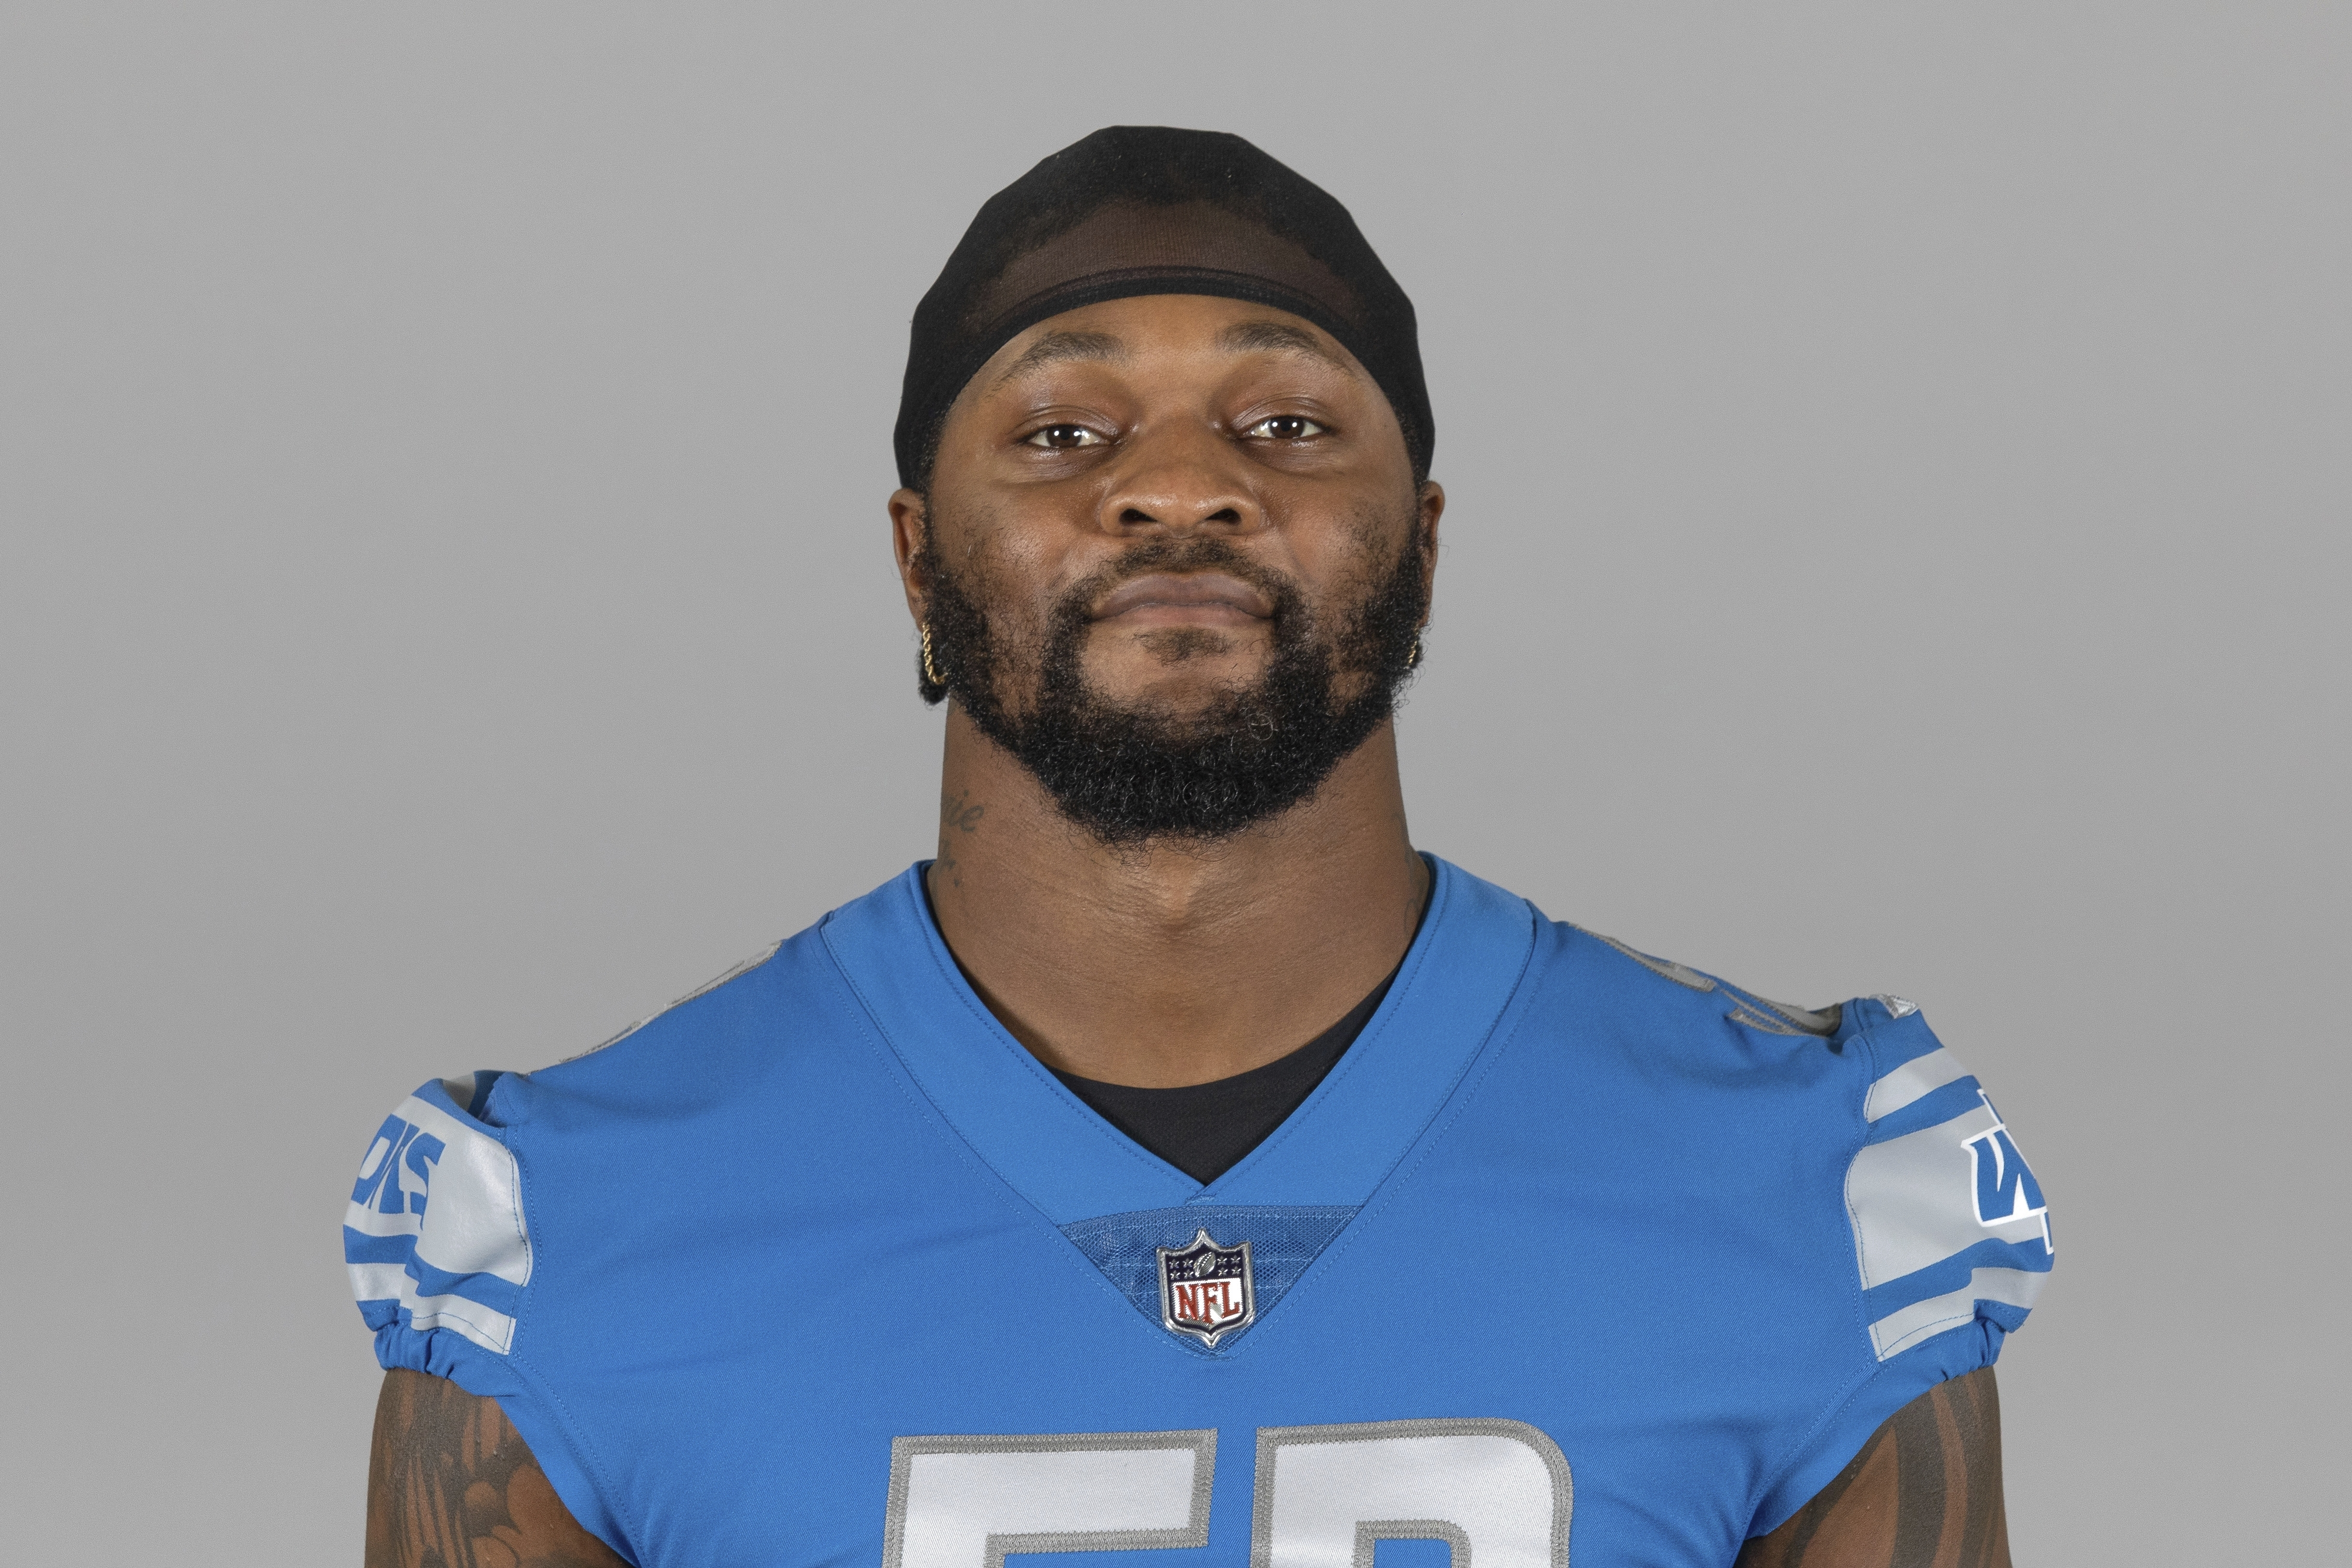 Report: Lions' Jamie Collins won't be suspended for bumping official